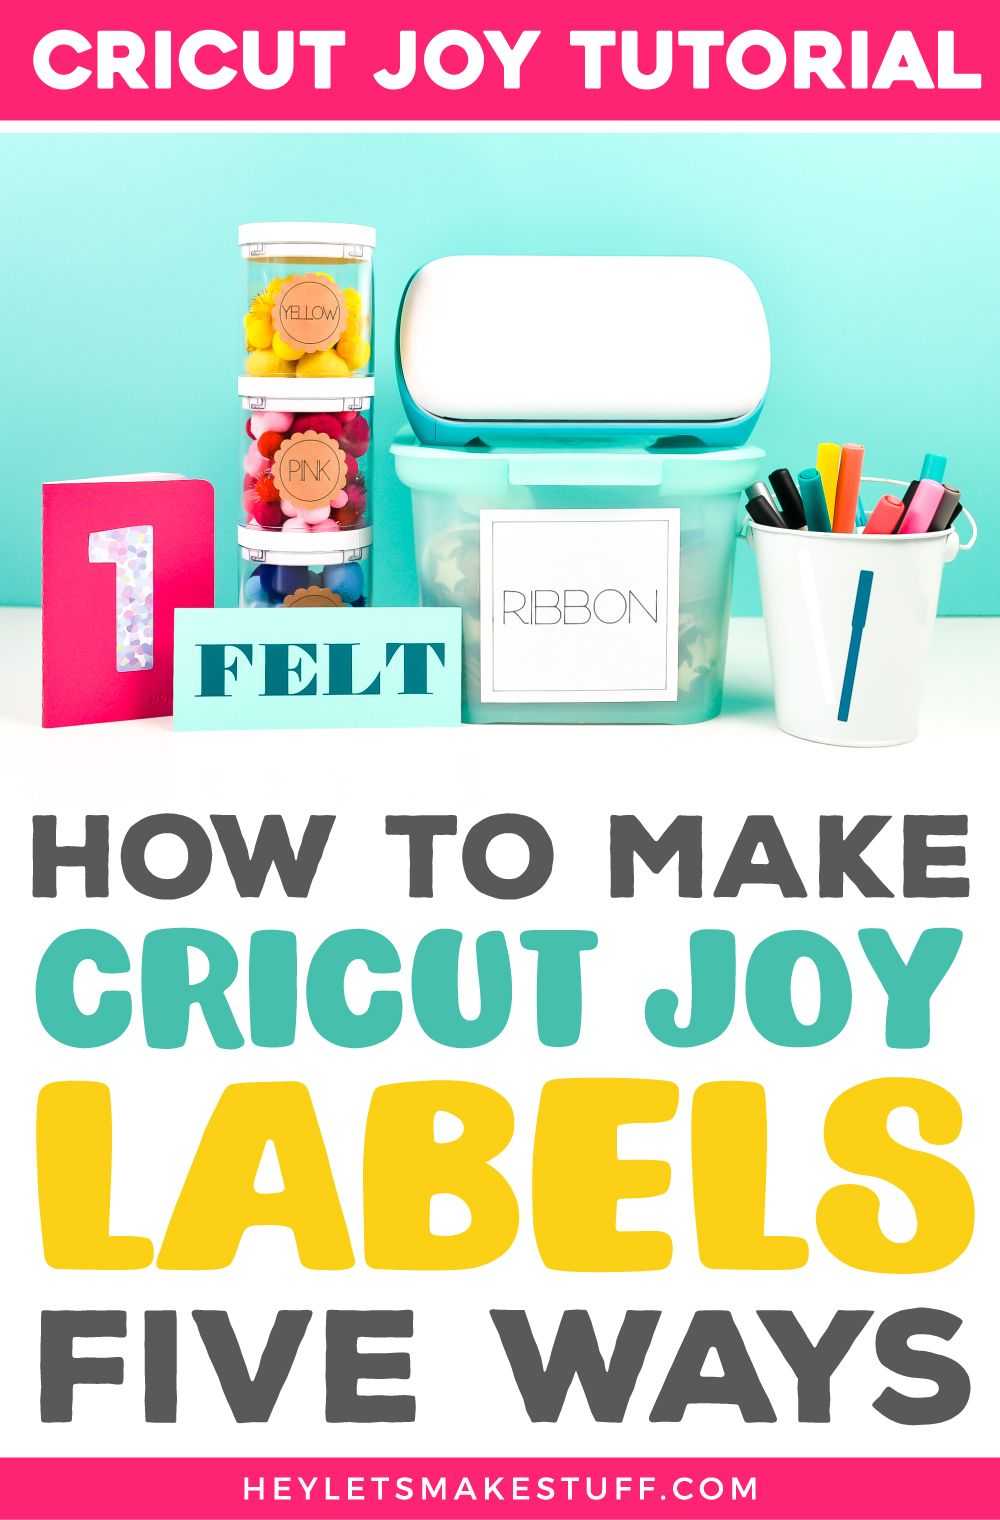 Five Ways To Make Labels With Cricut Joy In 2020 How To Make Labels Cricut Cricut Tutorials